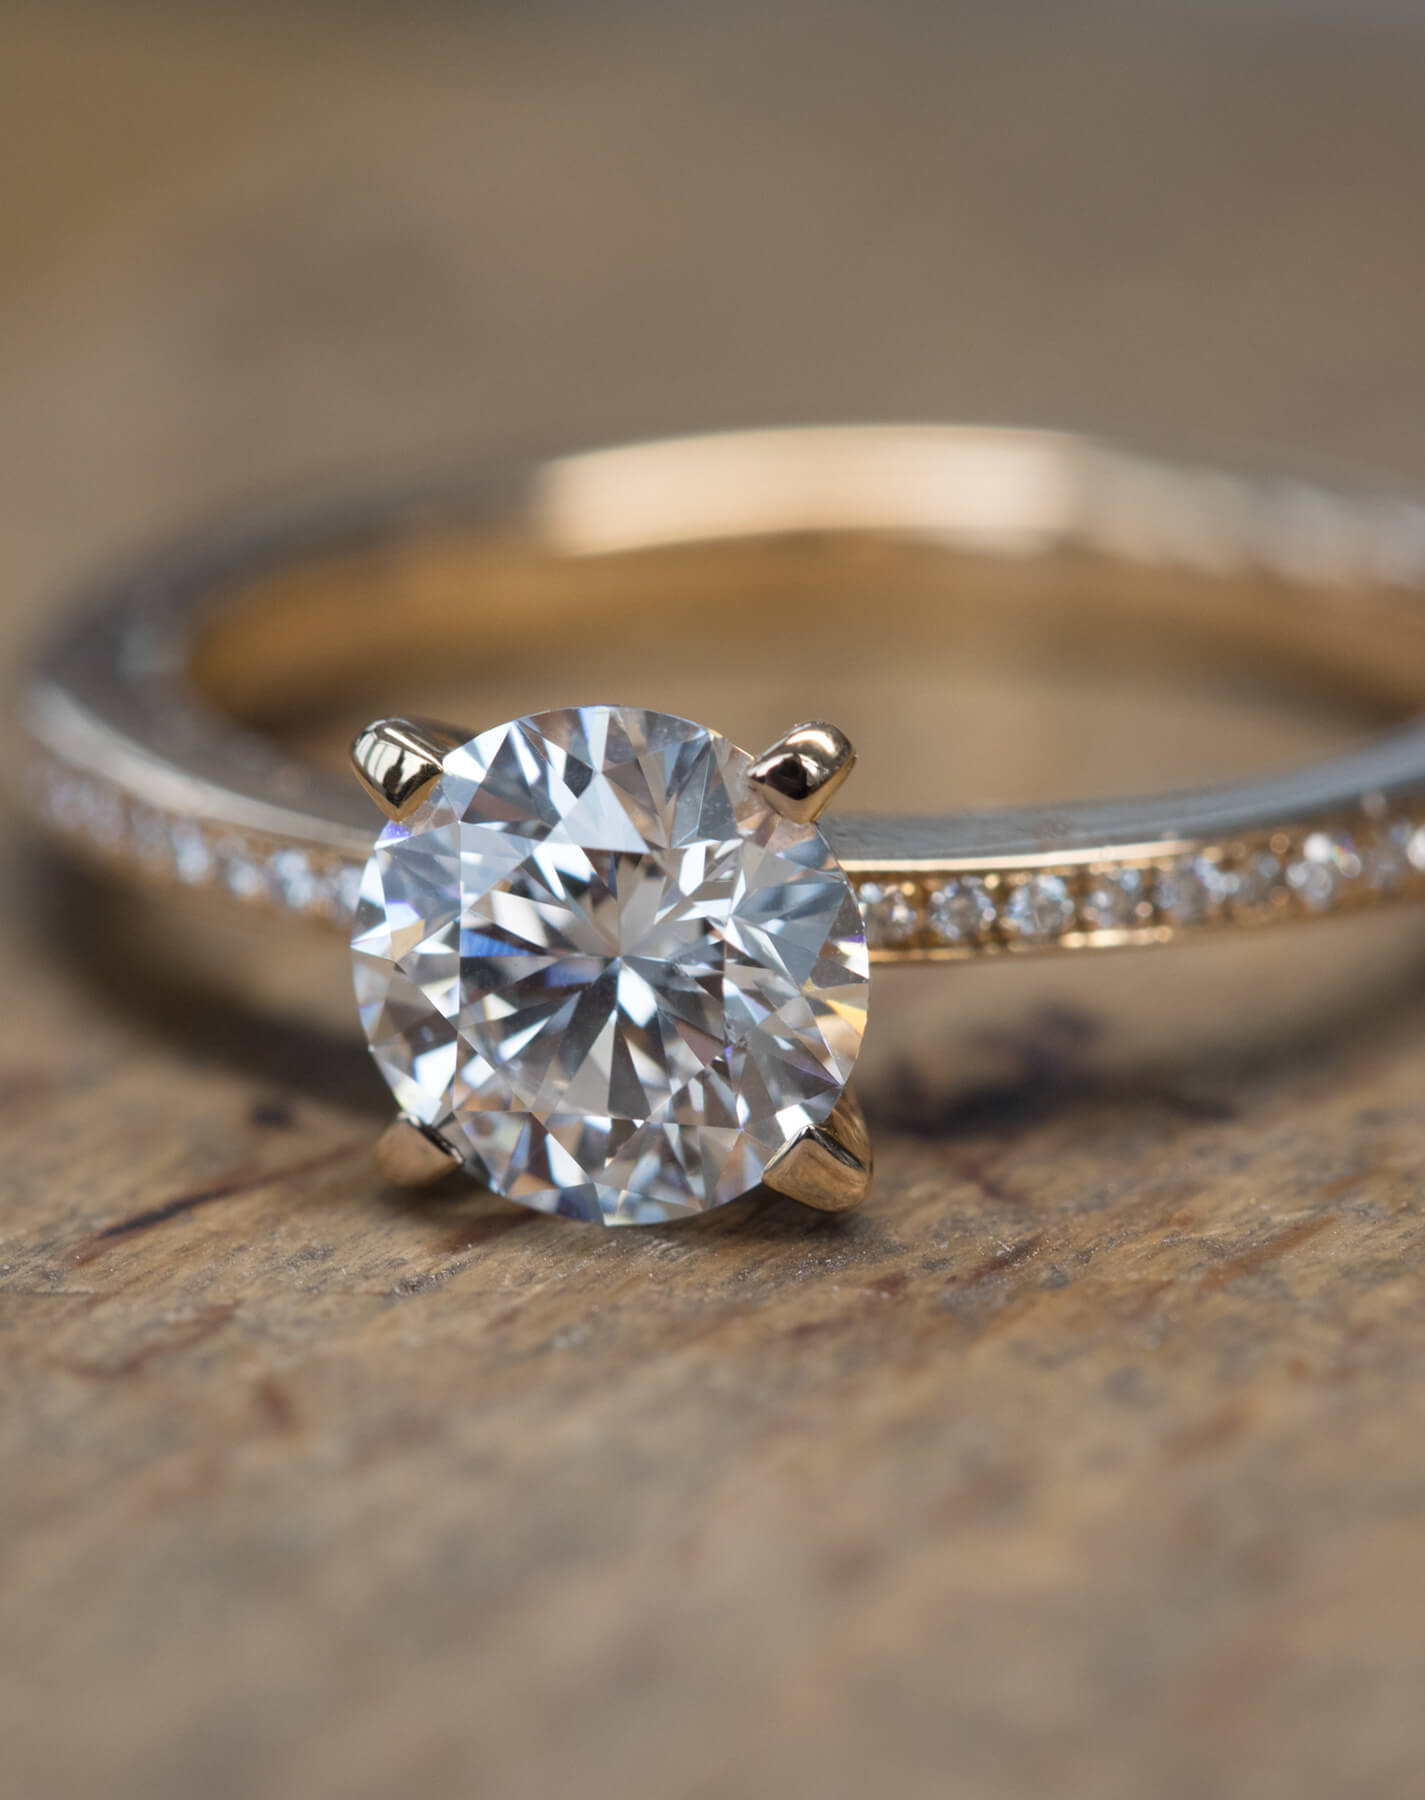 Close-up image of diamond solitaire ring with micro paved band